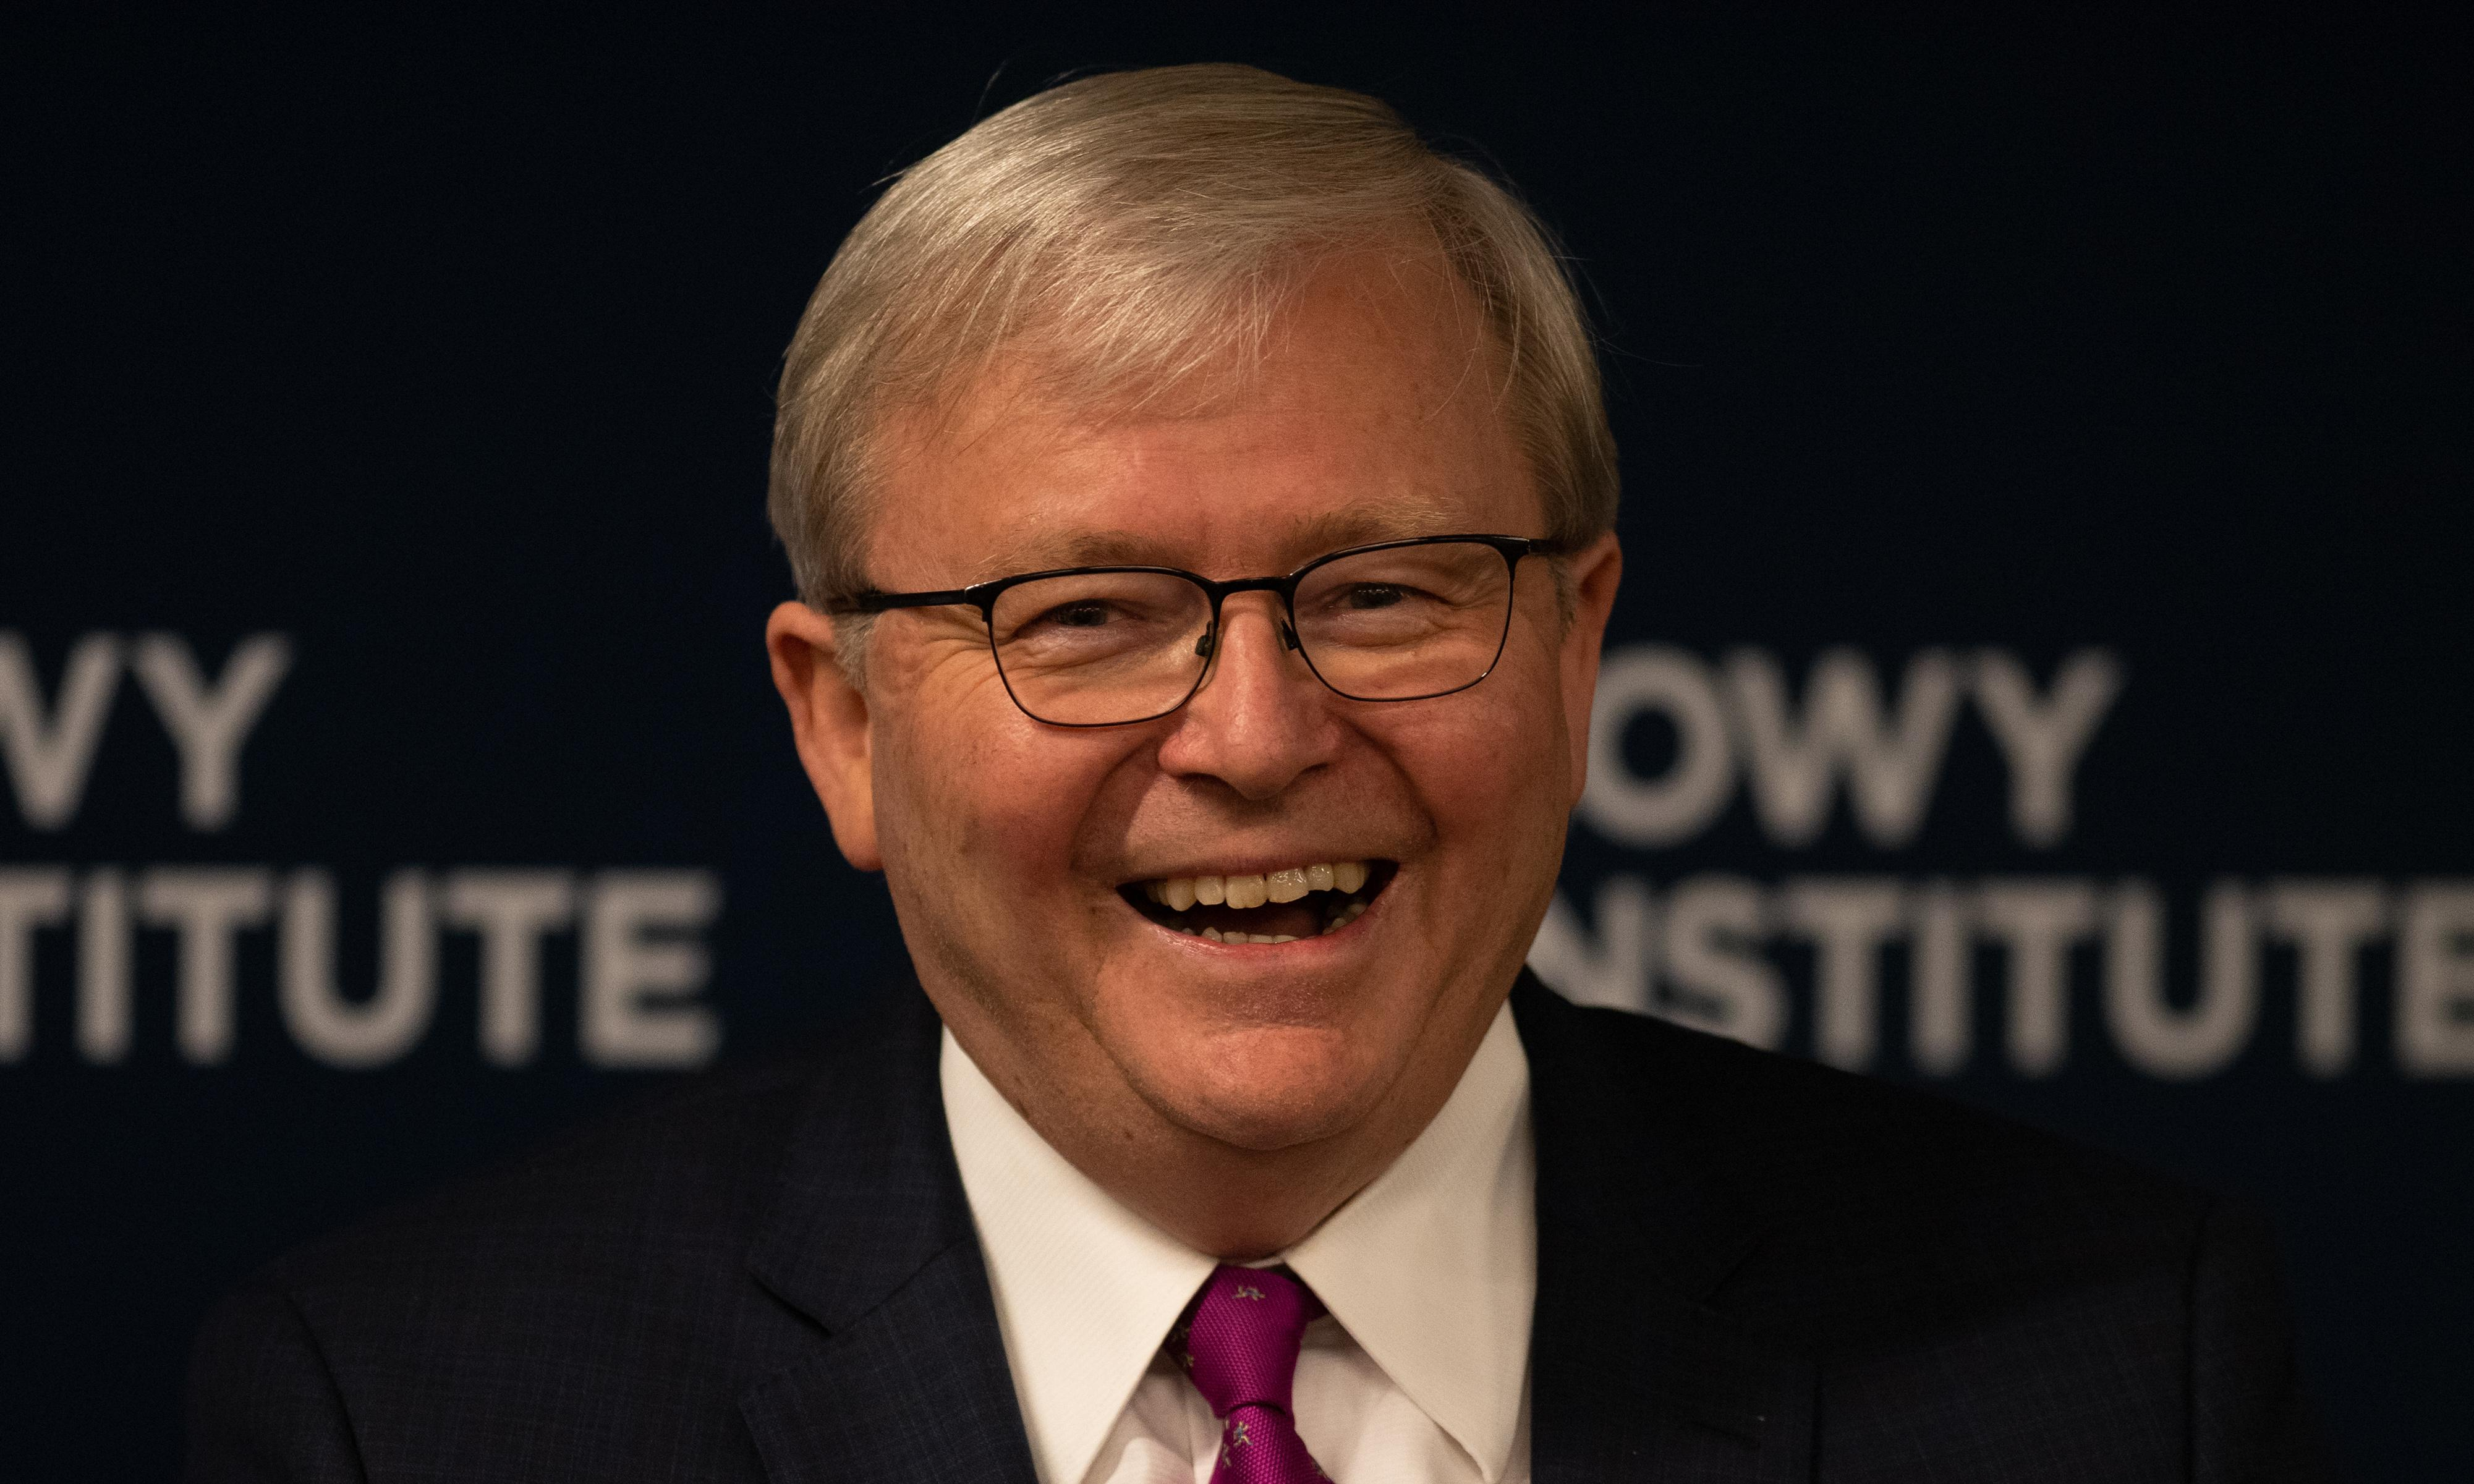 Turnbull 'nuttiness' to blame for bad relationship with China, Kevin Rudd says